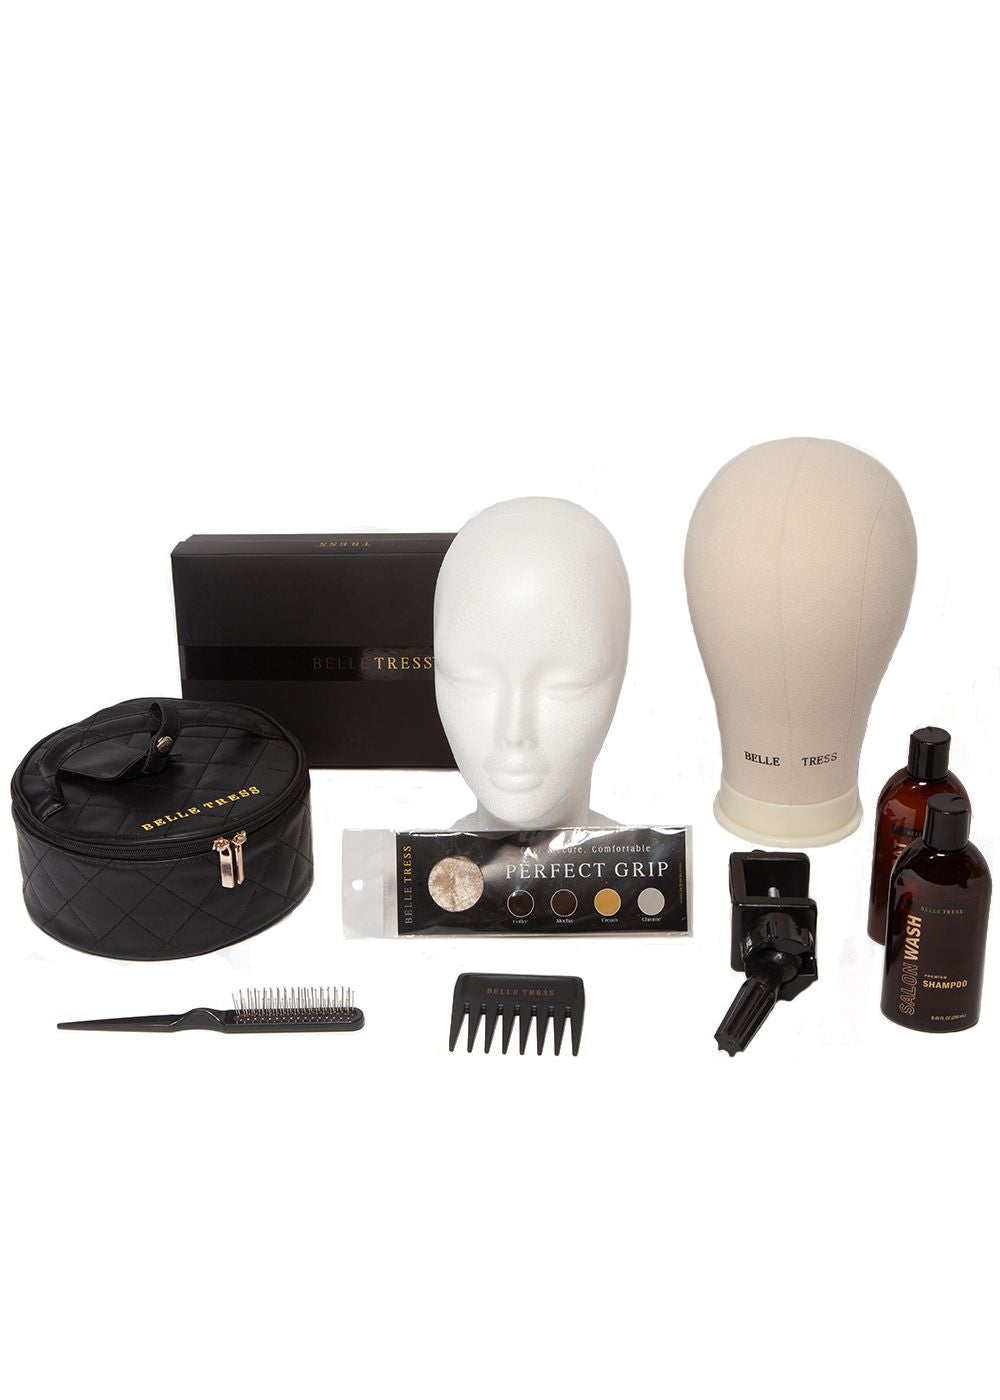 Deluxe Essential Care Kit for Synthetic Hair by Belle Tress